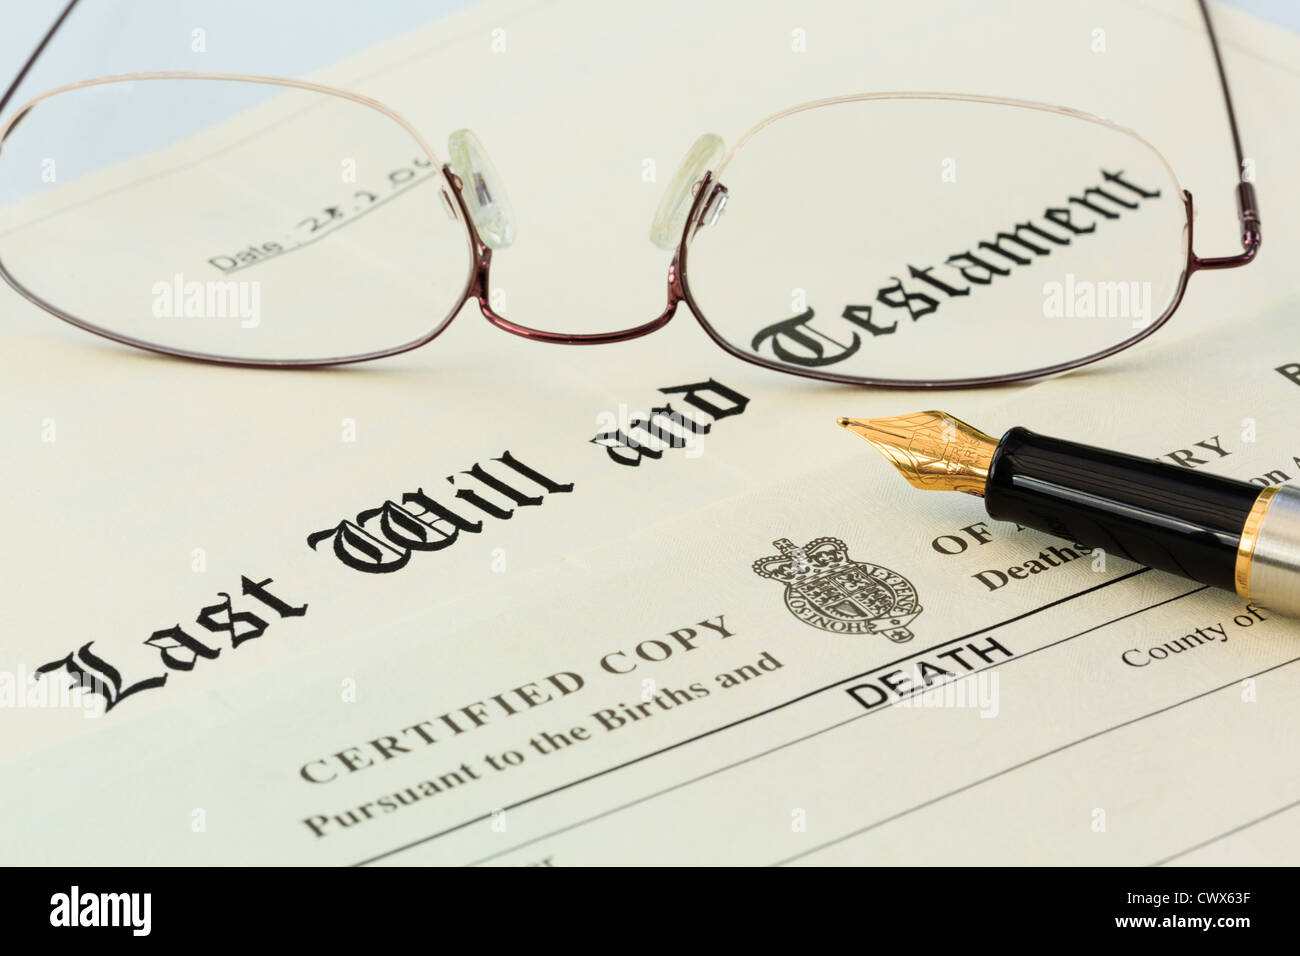 Legal Documents Stock Photos Legal Documents Stock Images Alamy - Will legal document